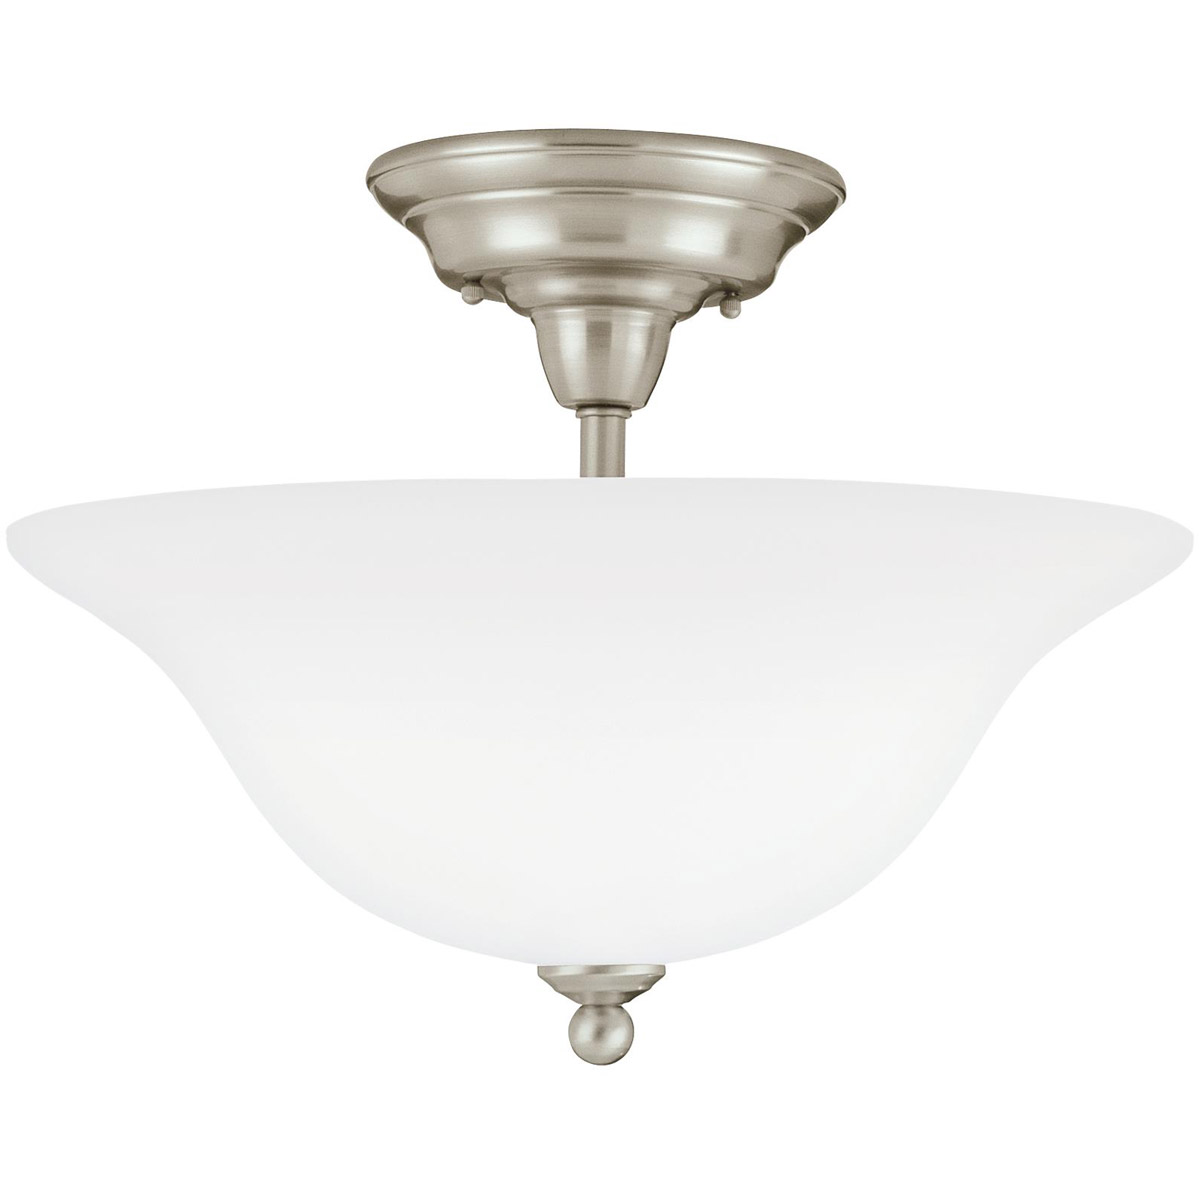 Sea Gull Lighting Sussex 3 Light Semi Flush Mount in Brushed Nickel 75061-962